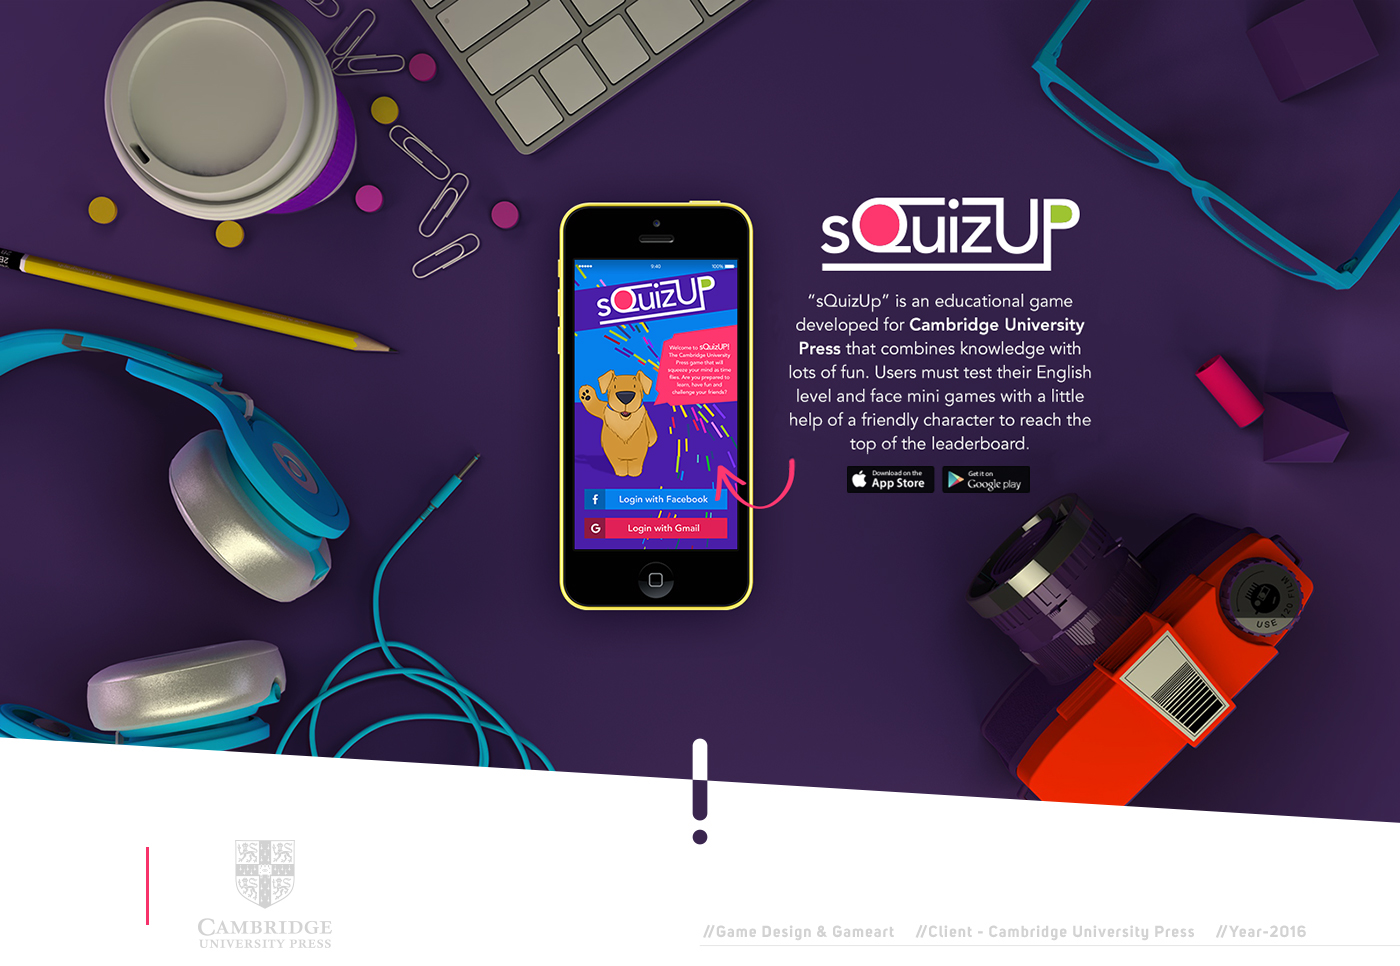 Game Character Design Apps : Game design and interaction design: cambridge squizup